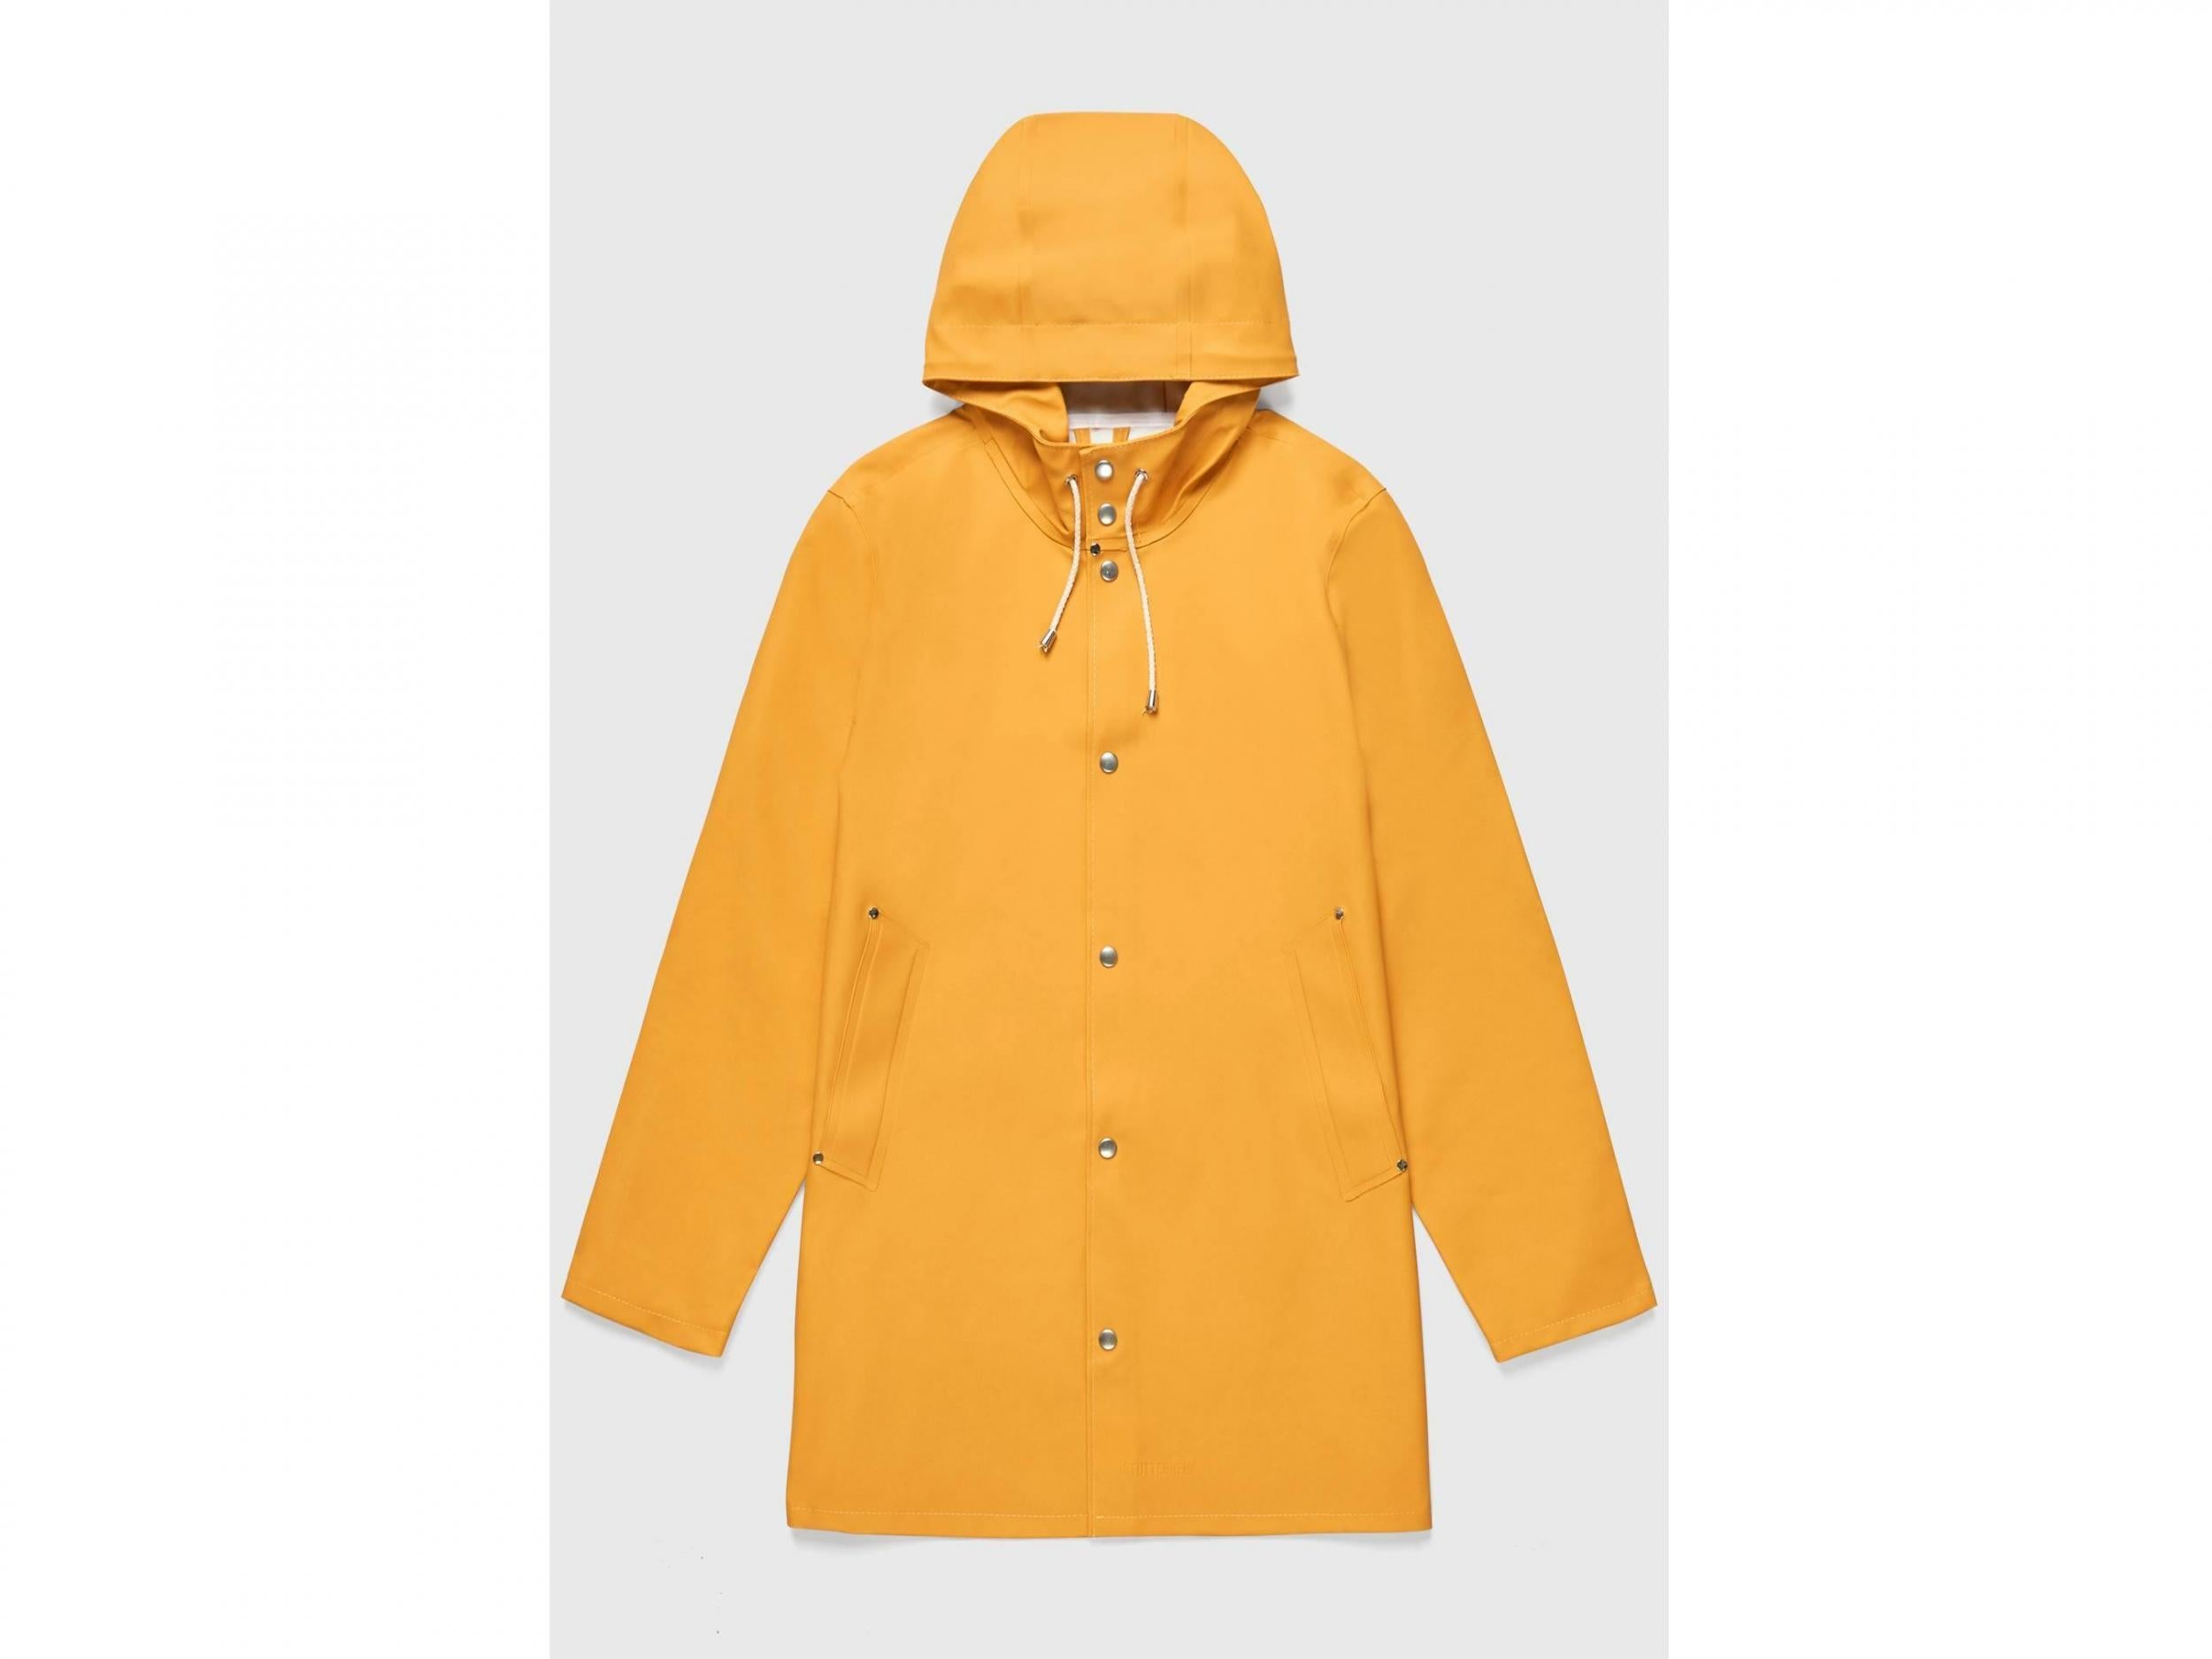 NEW TOP QUALITY PVC BOMBER JACKET STYLE FESTIVAL RAINCOAT CLEAR YELLOW MEDIUM